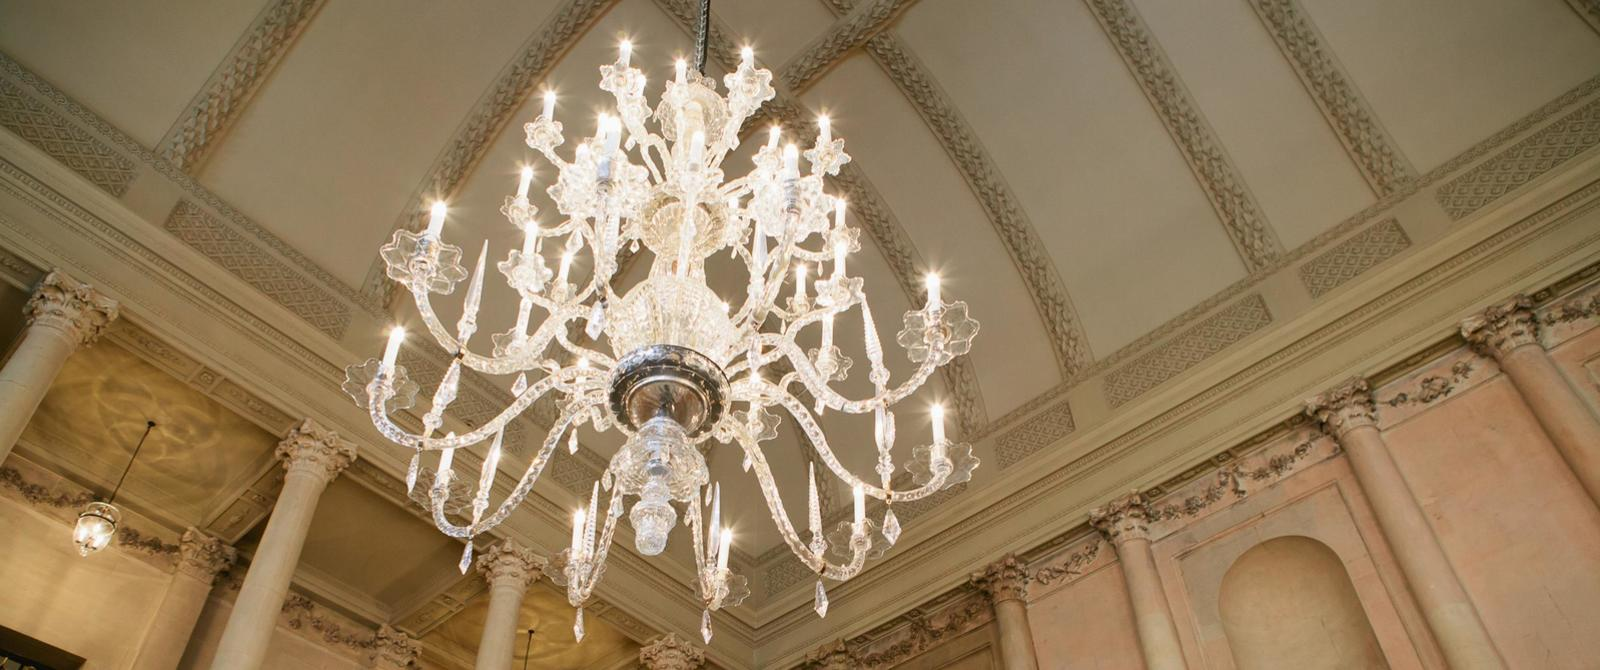 Image: Chandelier, Kristy Field